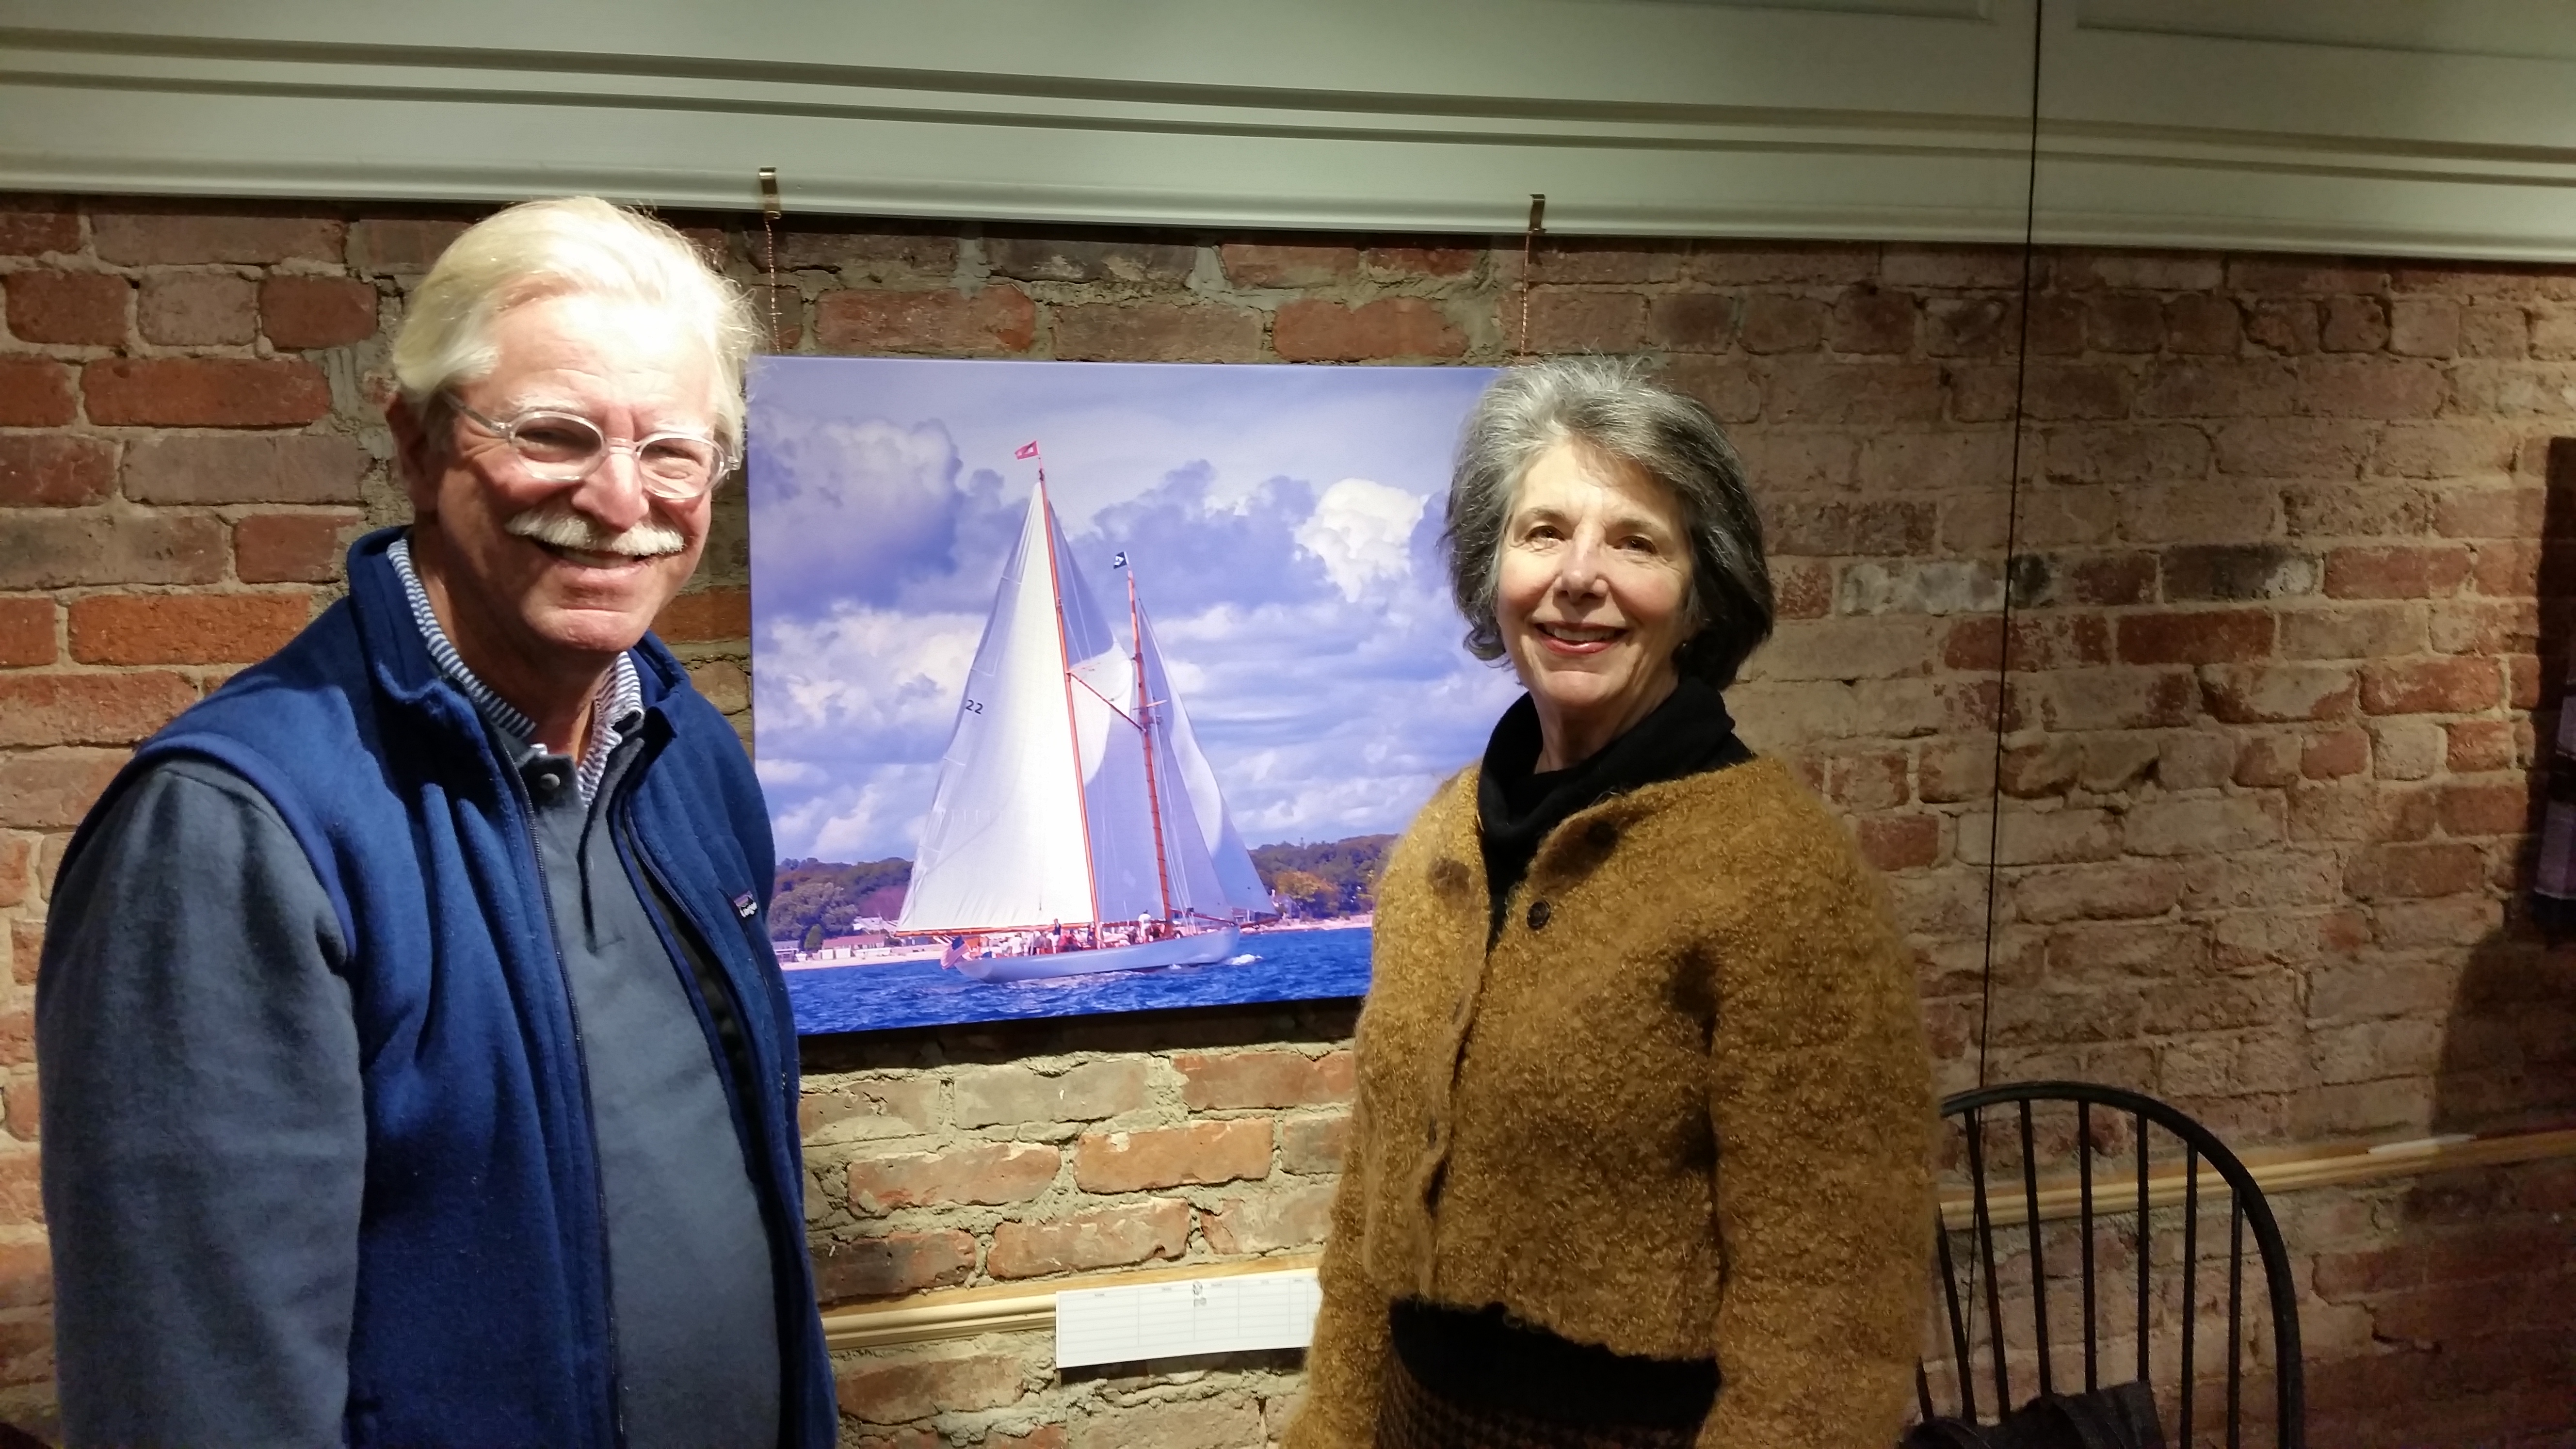 Chris Cox and Penny Parsekian caught admiring one of Joe Geraci's photos of the Brilliant